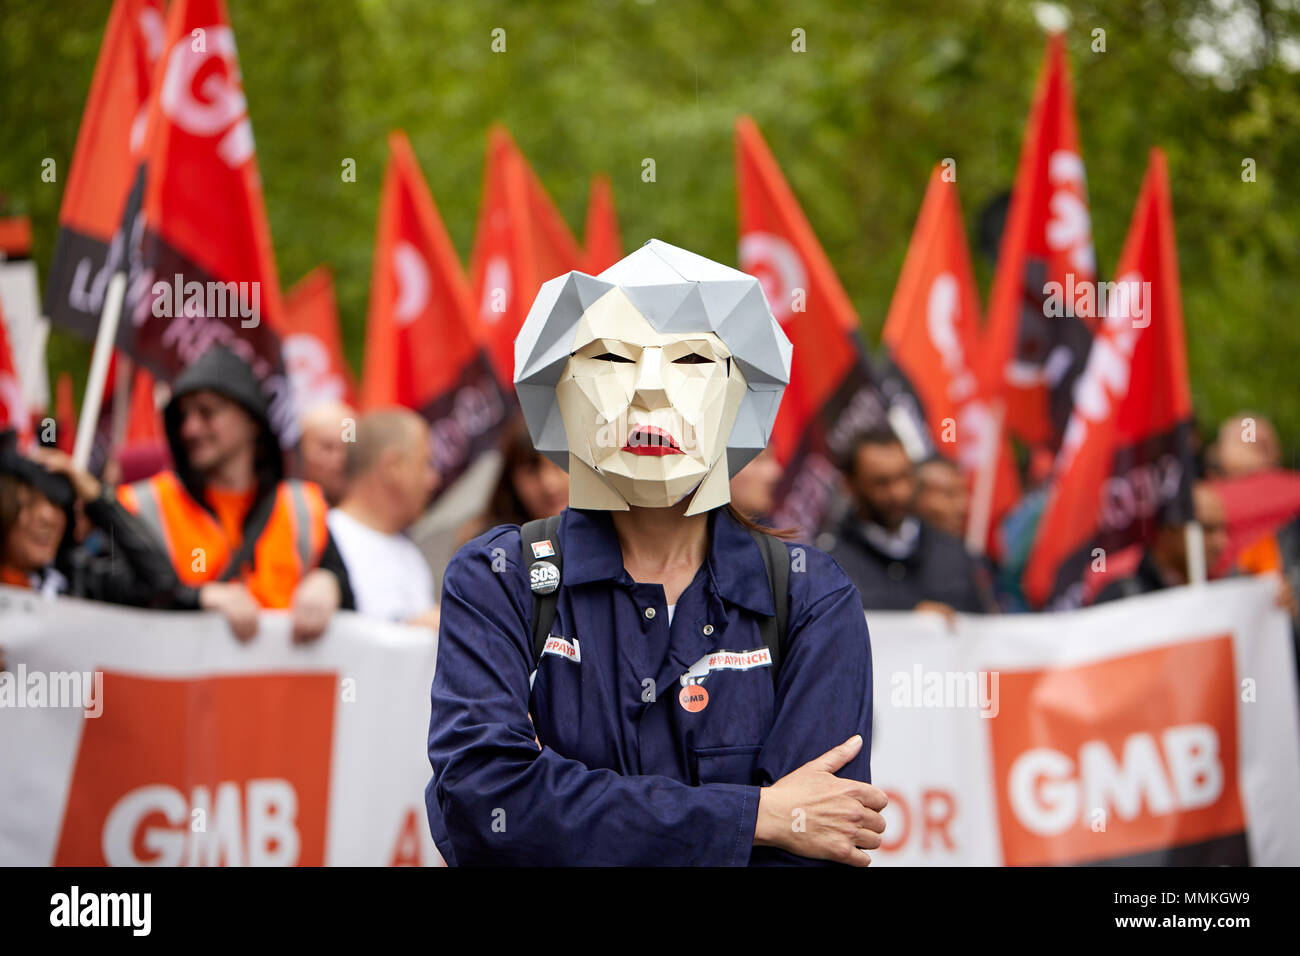 London, UK. 12th May 2018. A protestor wears a mask of Thersea May ahead of marchers at the TUC rally and march in London. Credit: Kevin Frost/Alamy Live News Credit: Kevin Frost/Alamy Live News - Stock Image